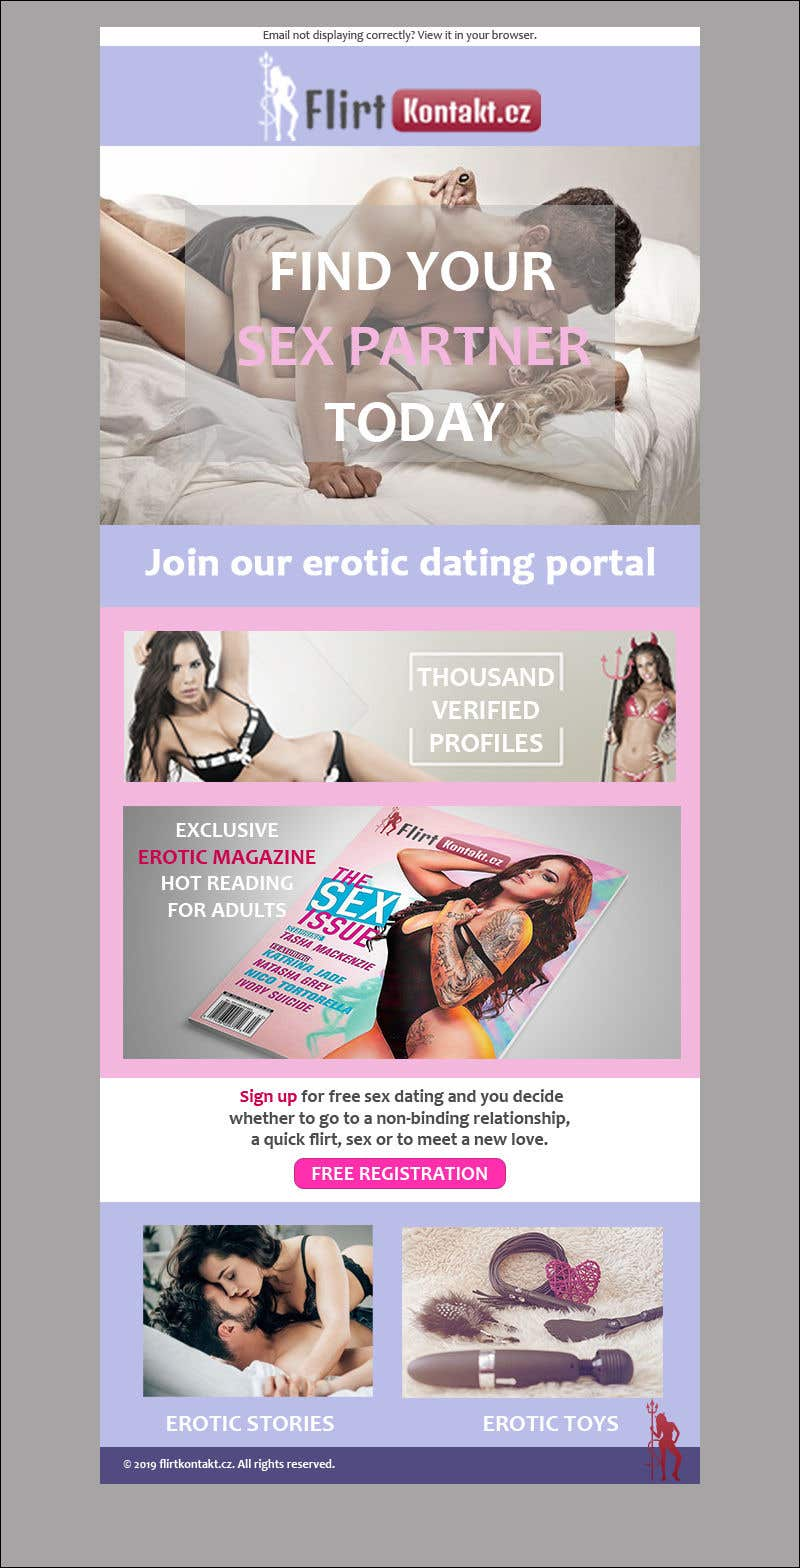 Proposition n°16 du concours 10 mail templates for erotic datig site